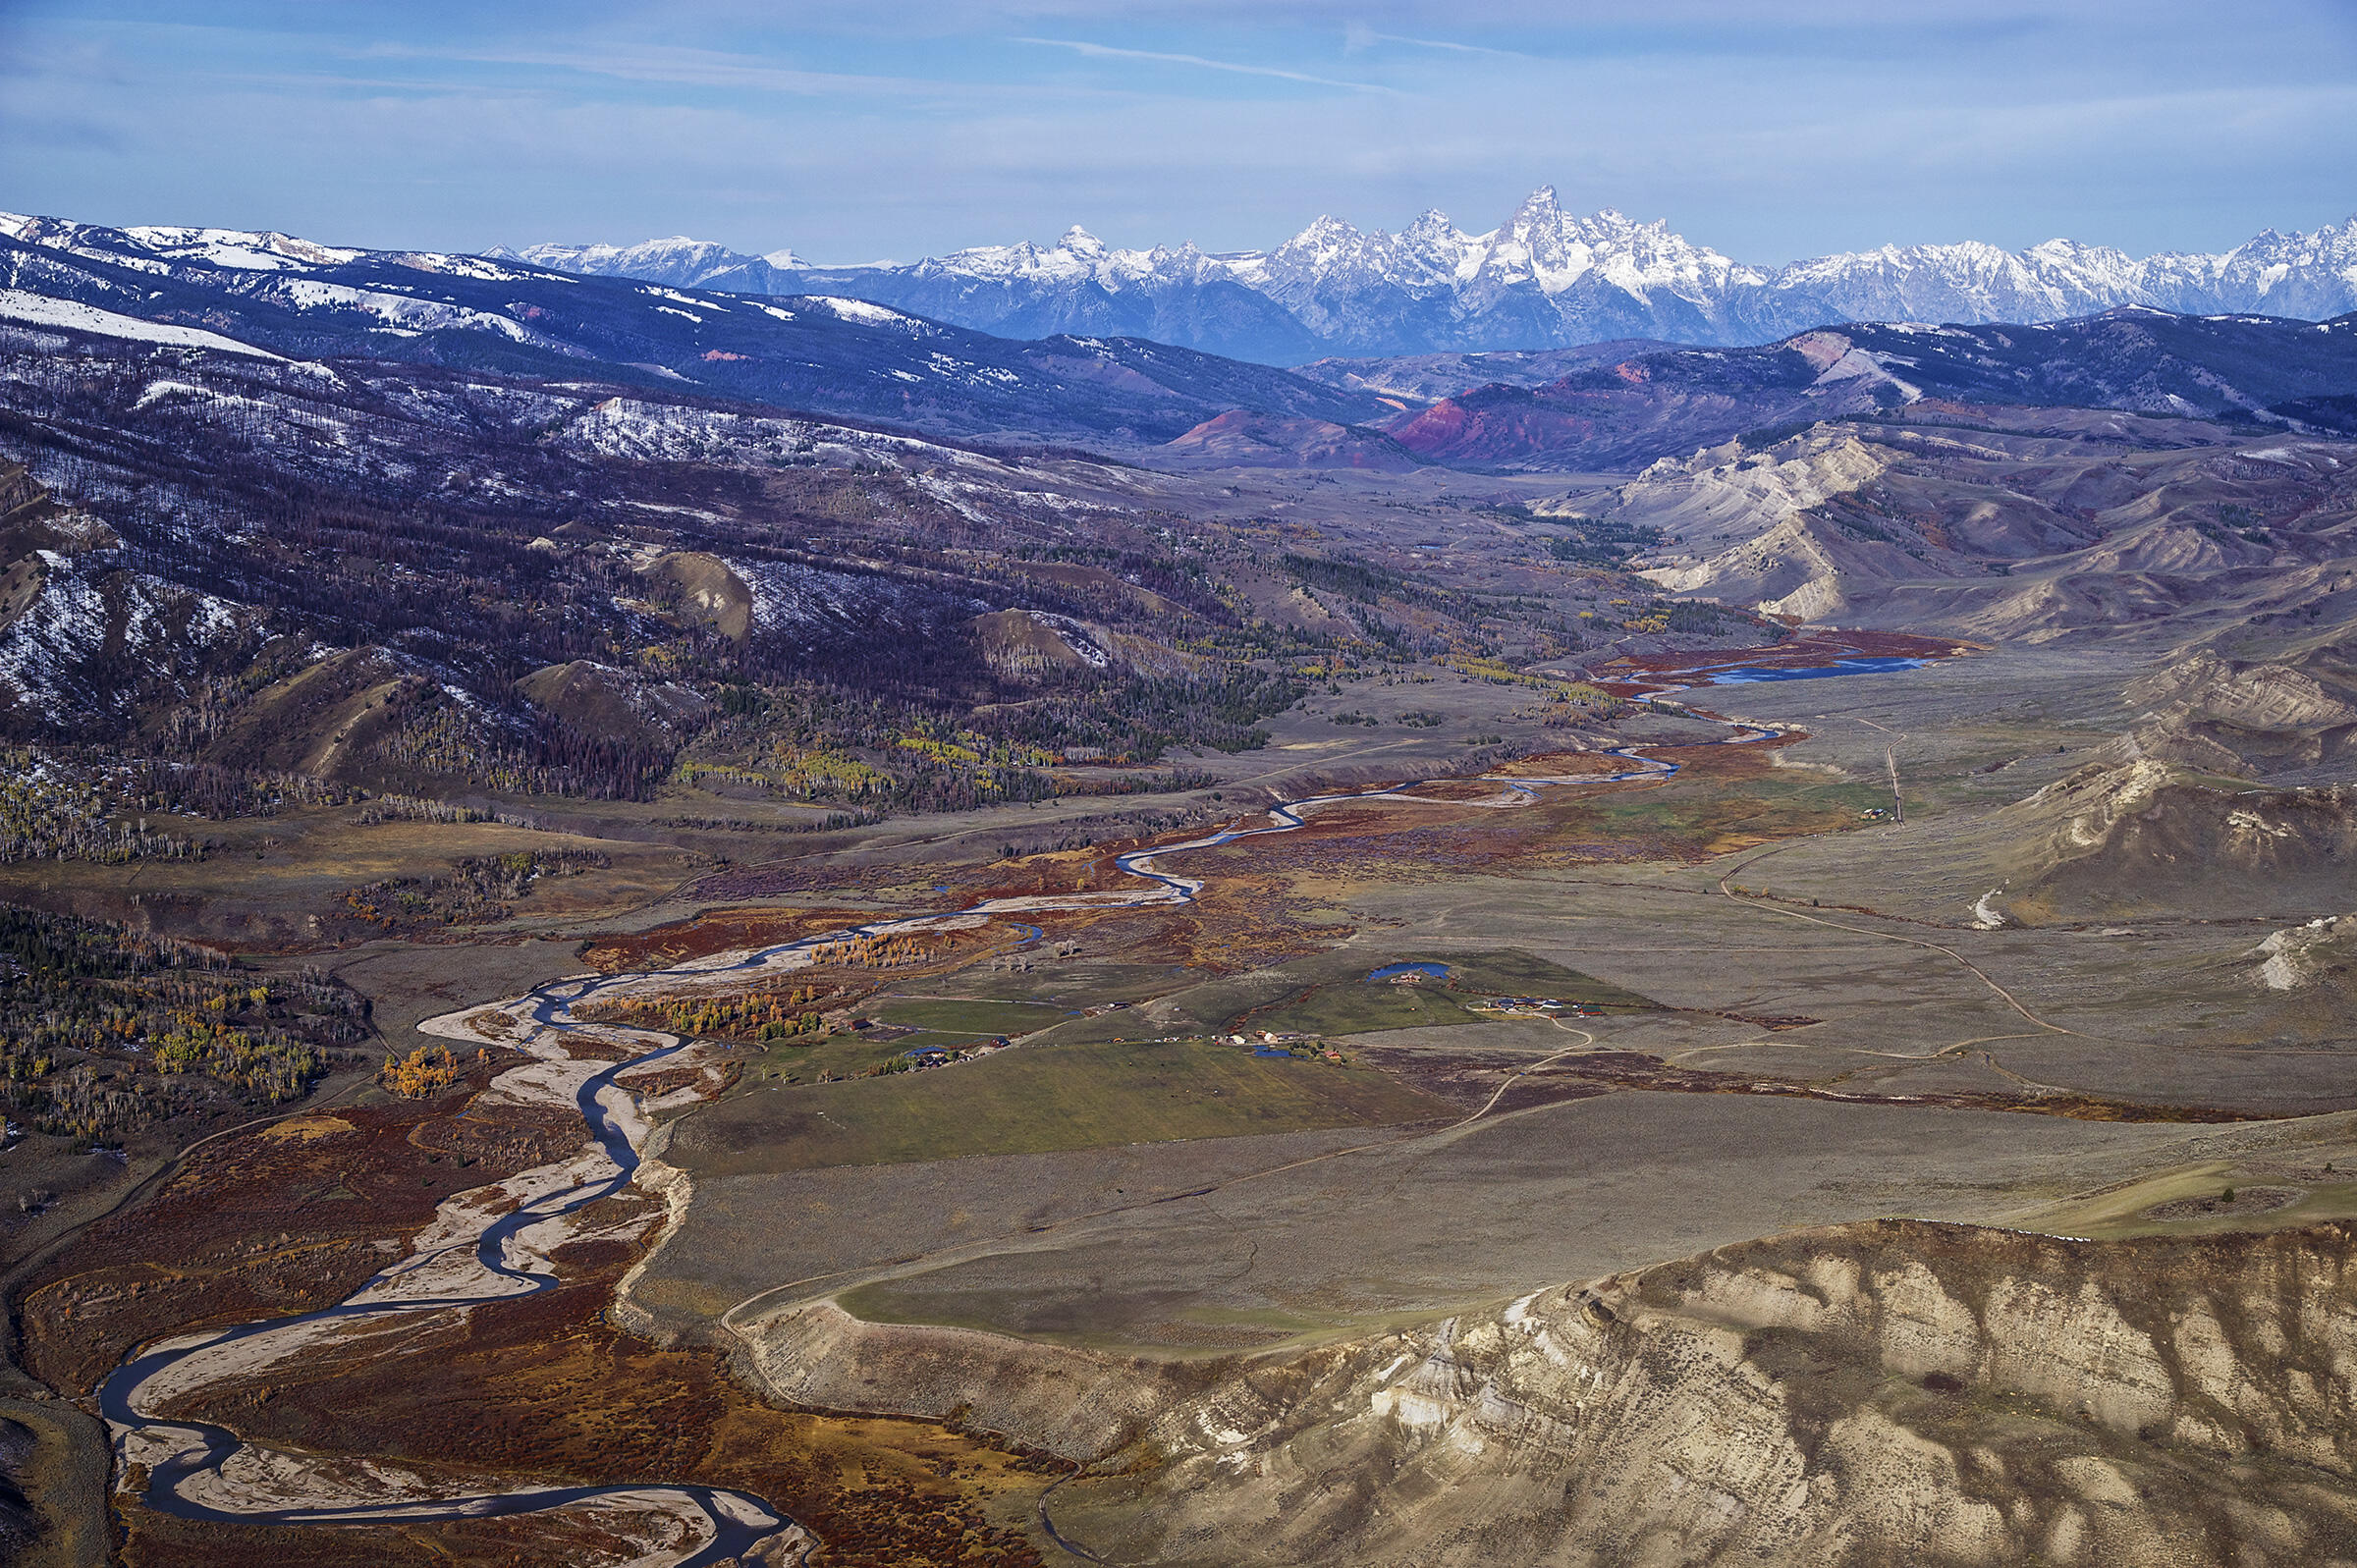 """This aerial view of the Gros Ventre River Valley shows a large swath of the """"path of the pronghorn"""" migration corridor, with the Teton Range as a backdrop. Bridger-Teton National Forest, Wyoming. Dave Showalter"""